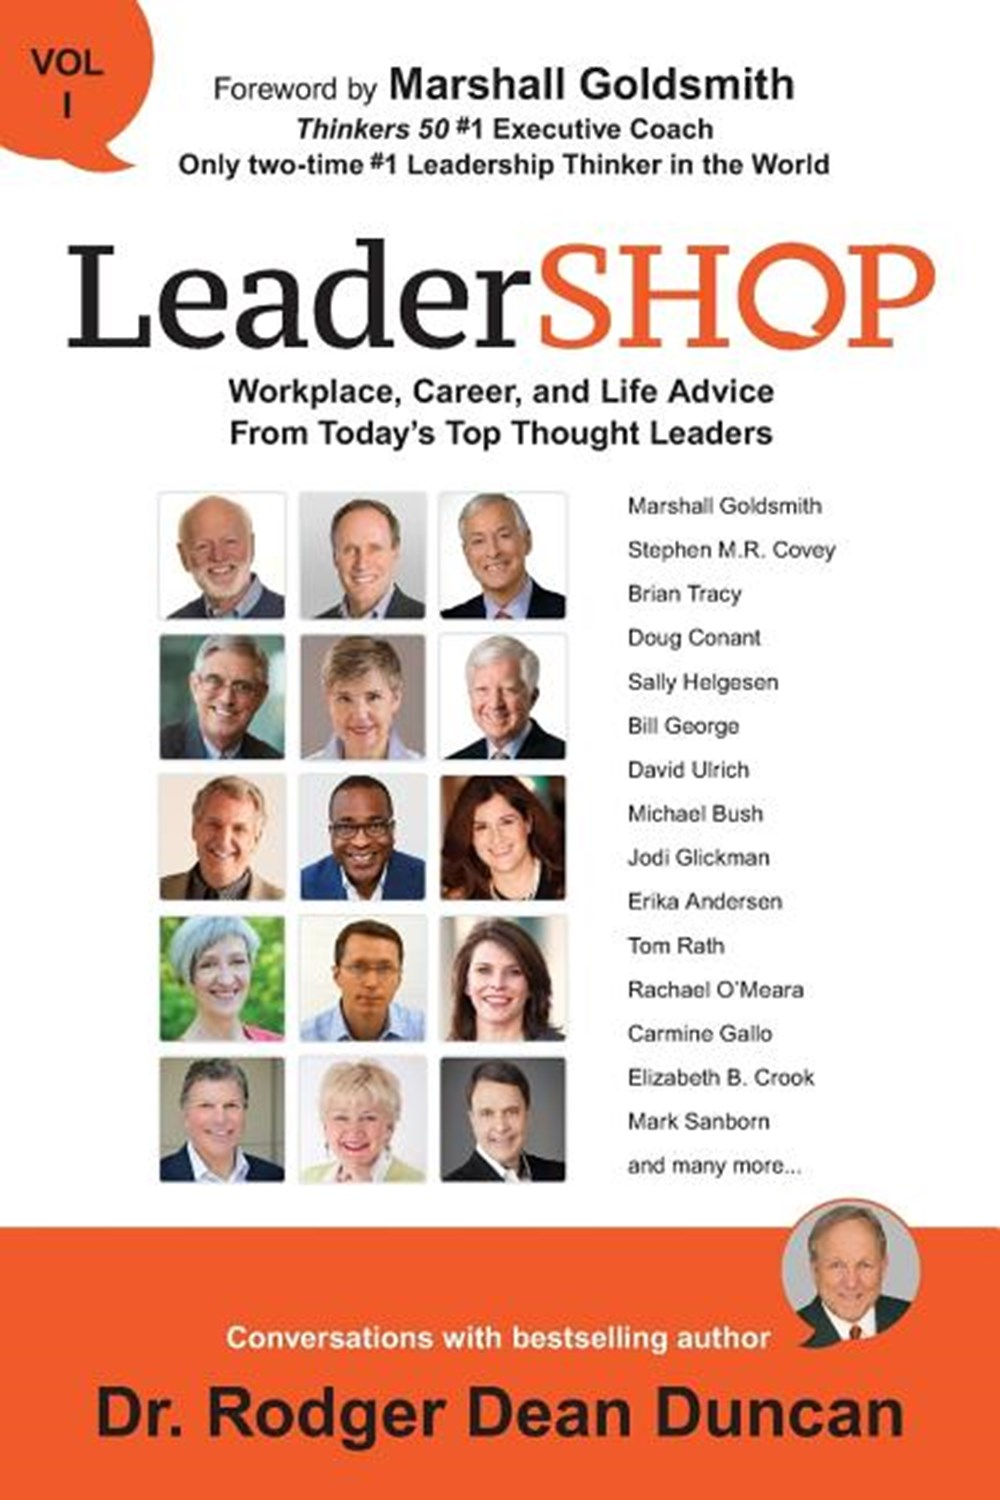 LeaderSHOP Volume 1 Workplace, Career, and Life Advice From Today's Top Thought Leaders